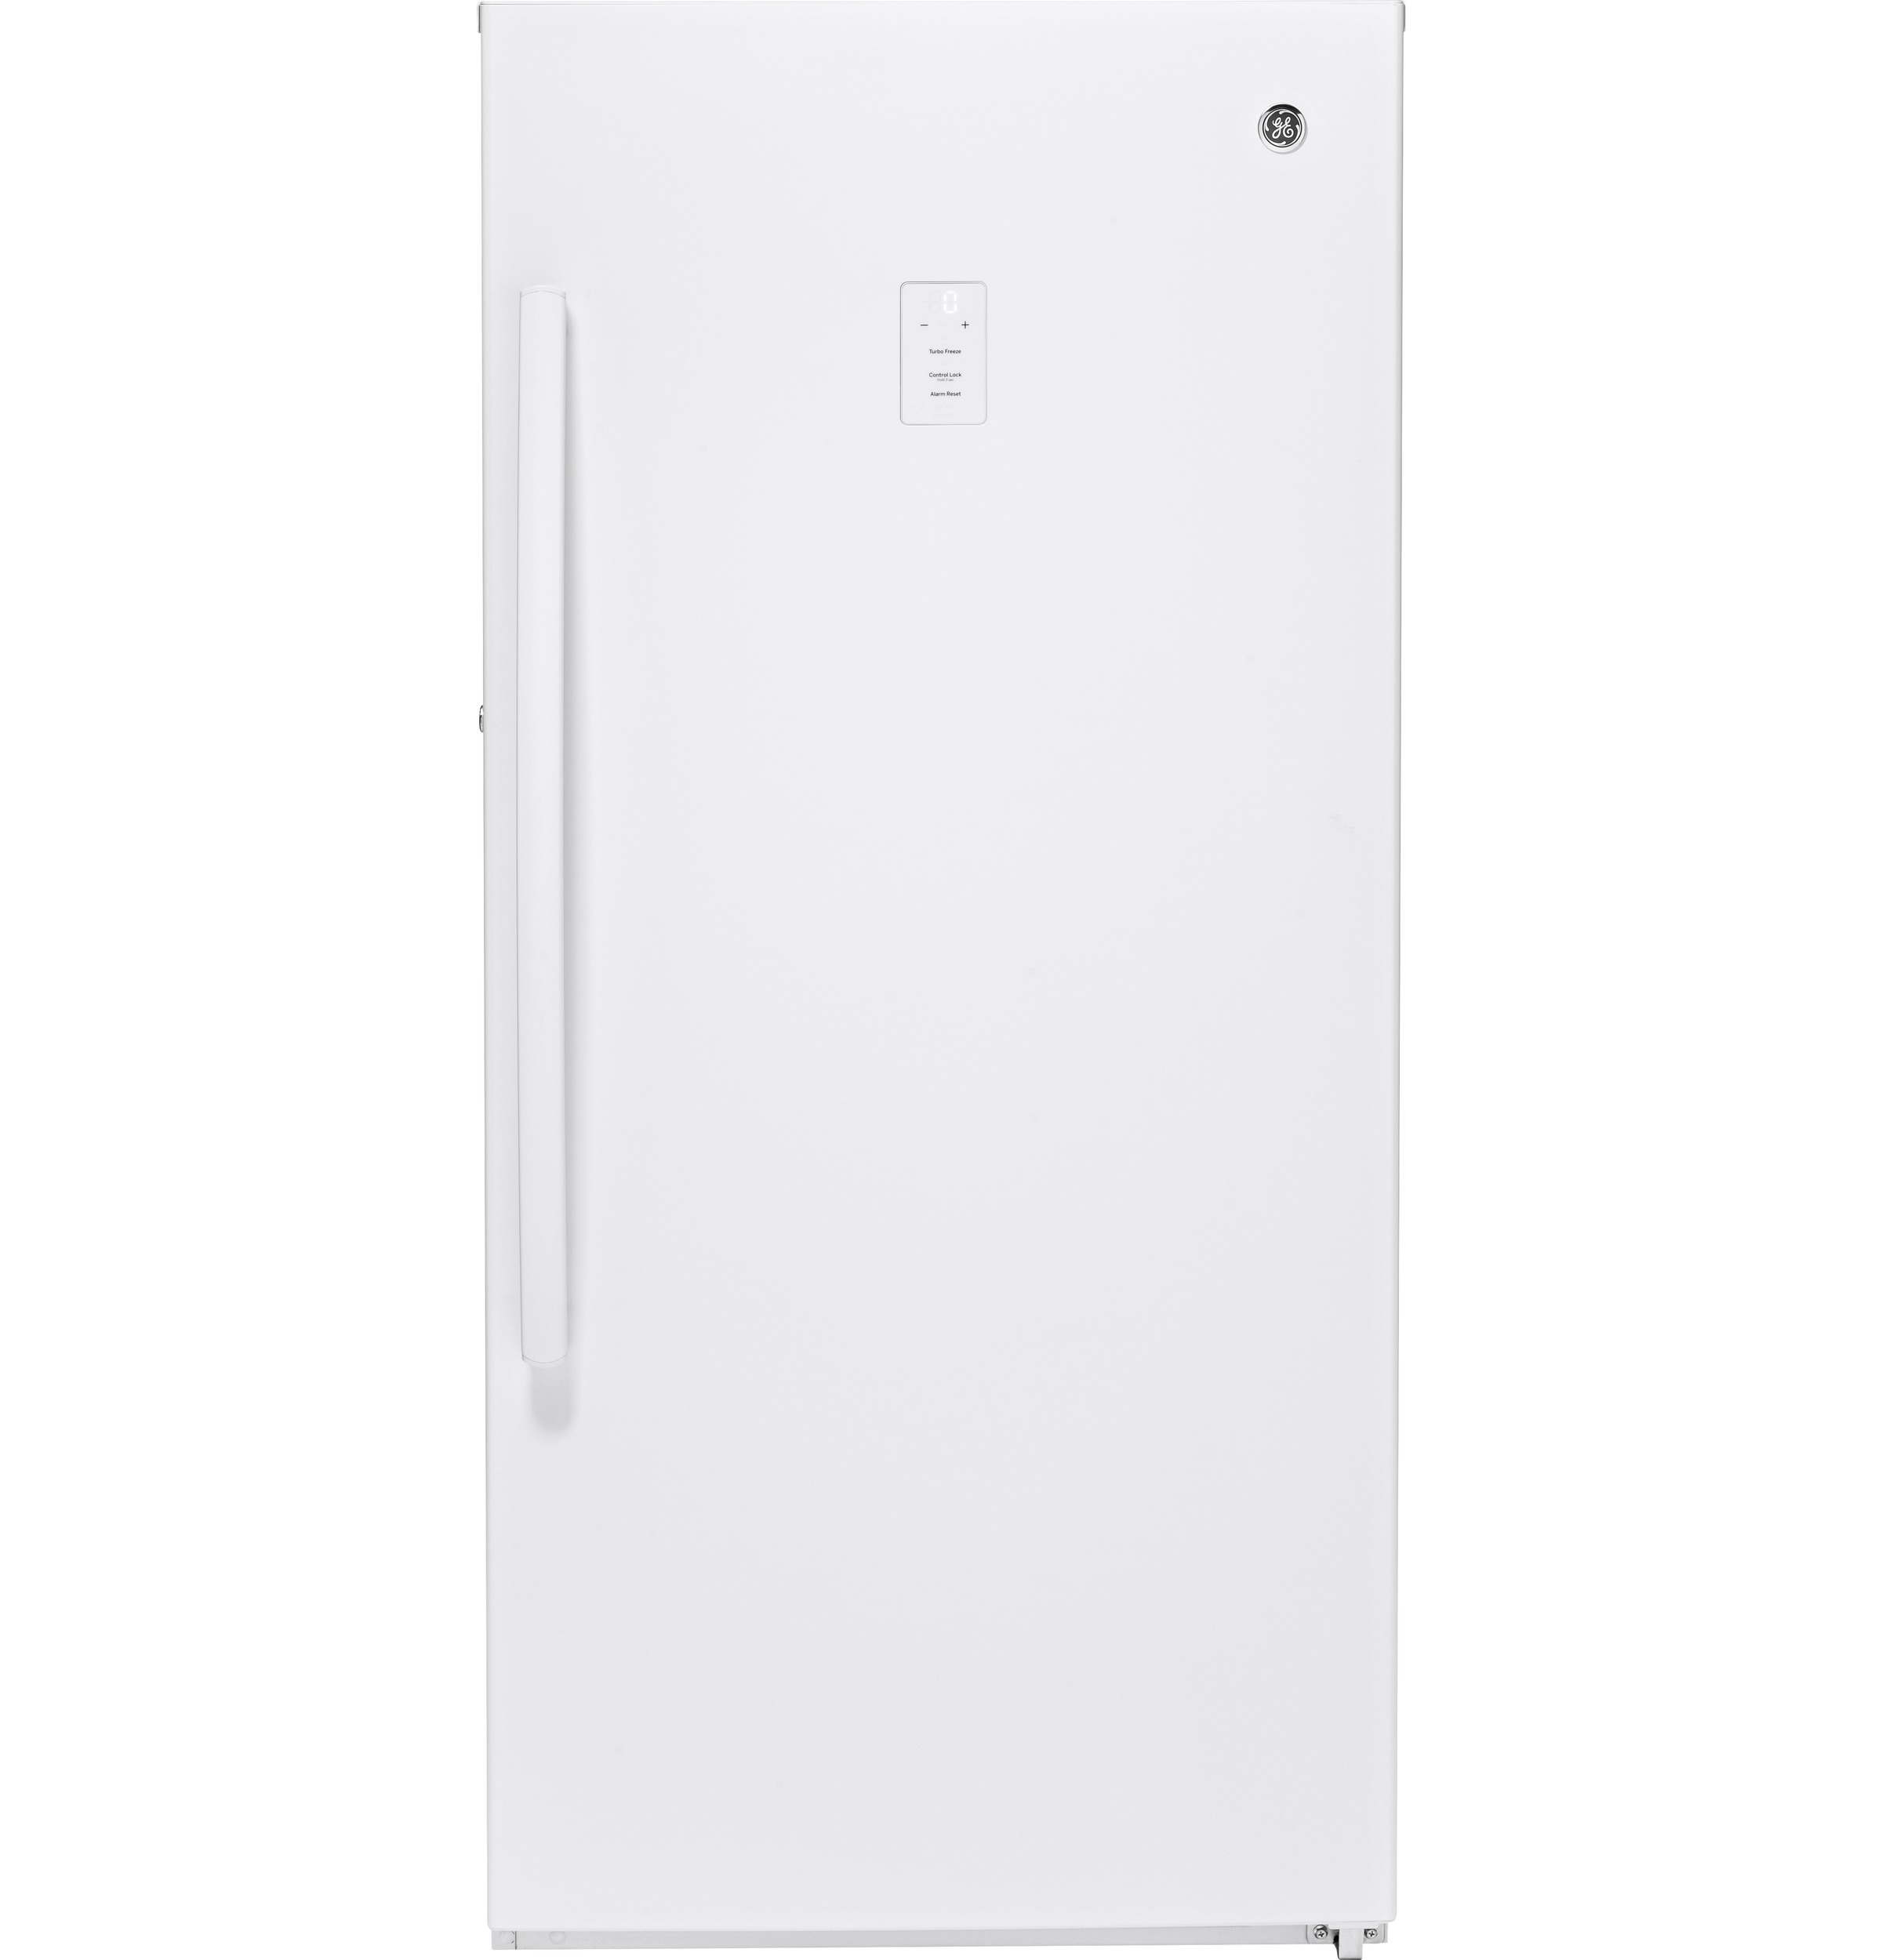 Model: FUF14DLRWW | GE GE® 14.1 Cu. Ft. Frost-Free Upright Freezer